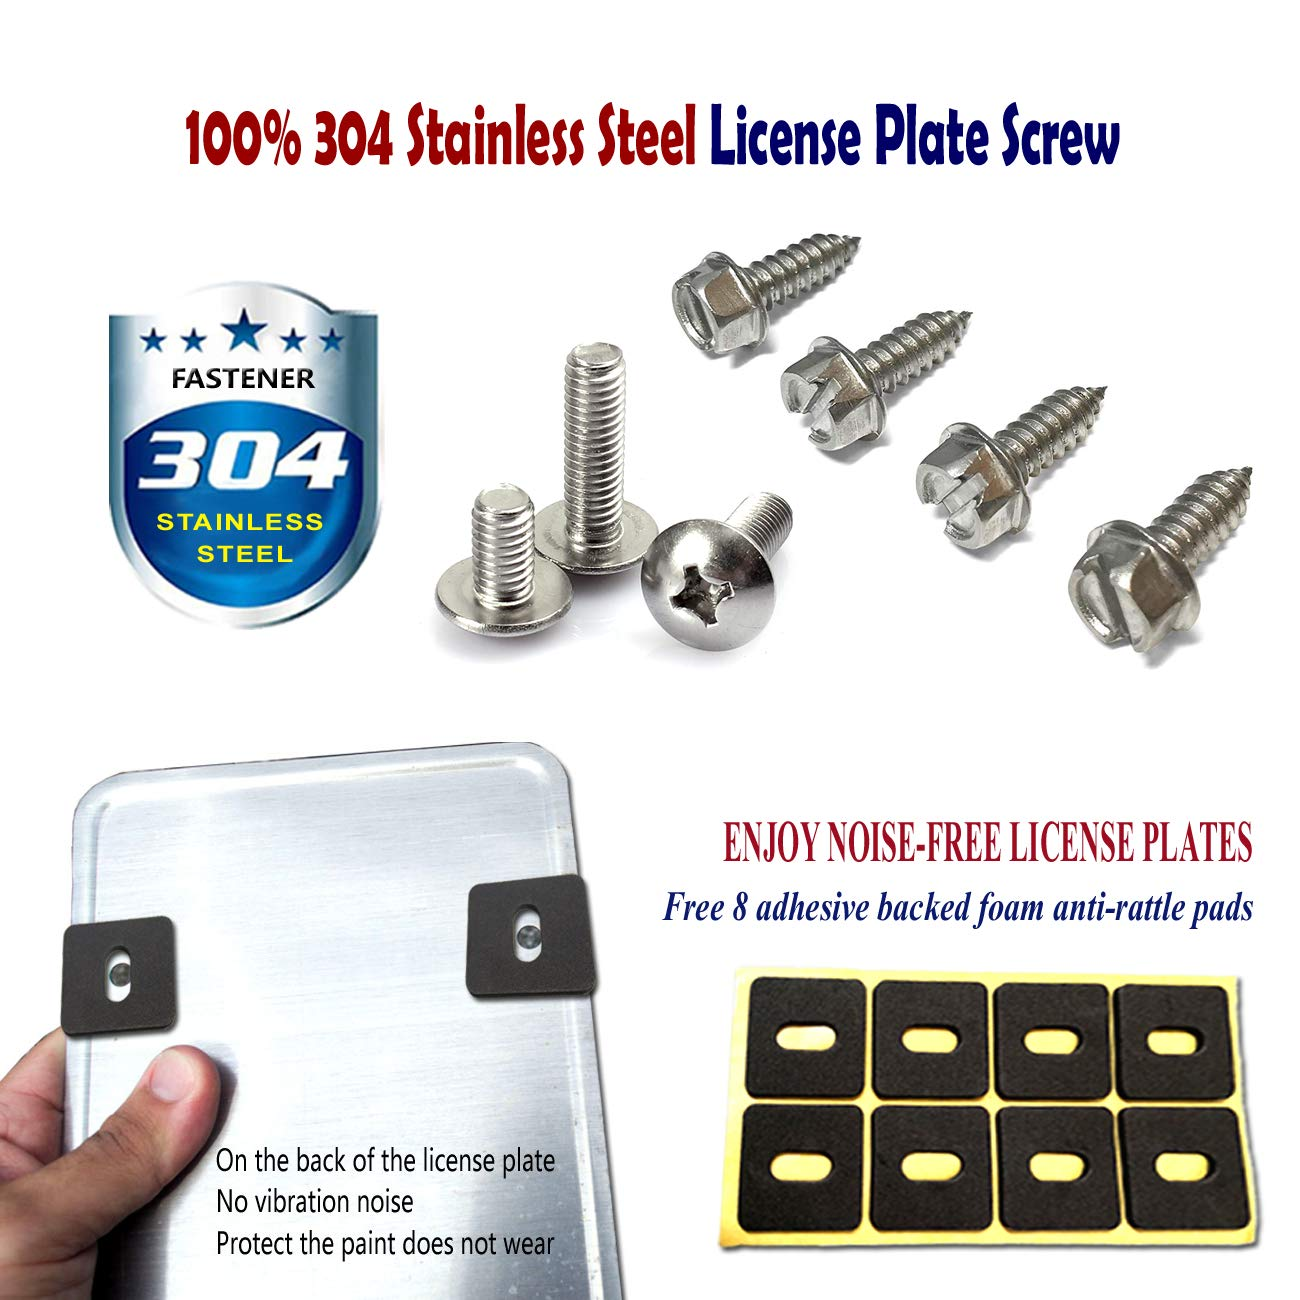 PUQIN-AUTO License Plate Anti Theft Screws Stainless Steel License Plate Frame Screws Tamper Resistant Fasteners Security Screws for Protection License Plates on Cars Trucks Set of 8